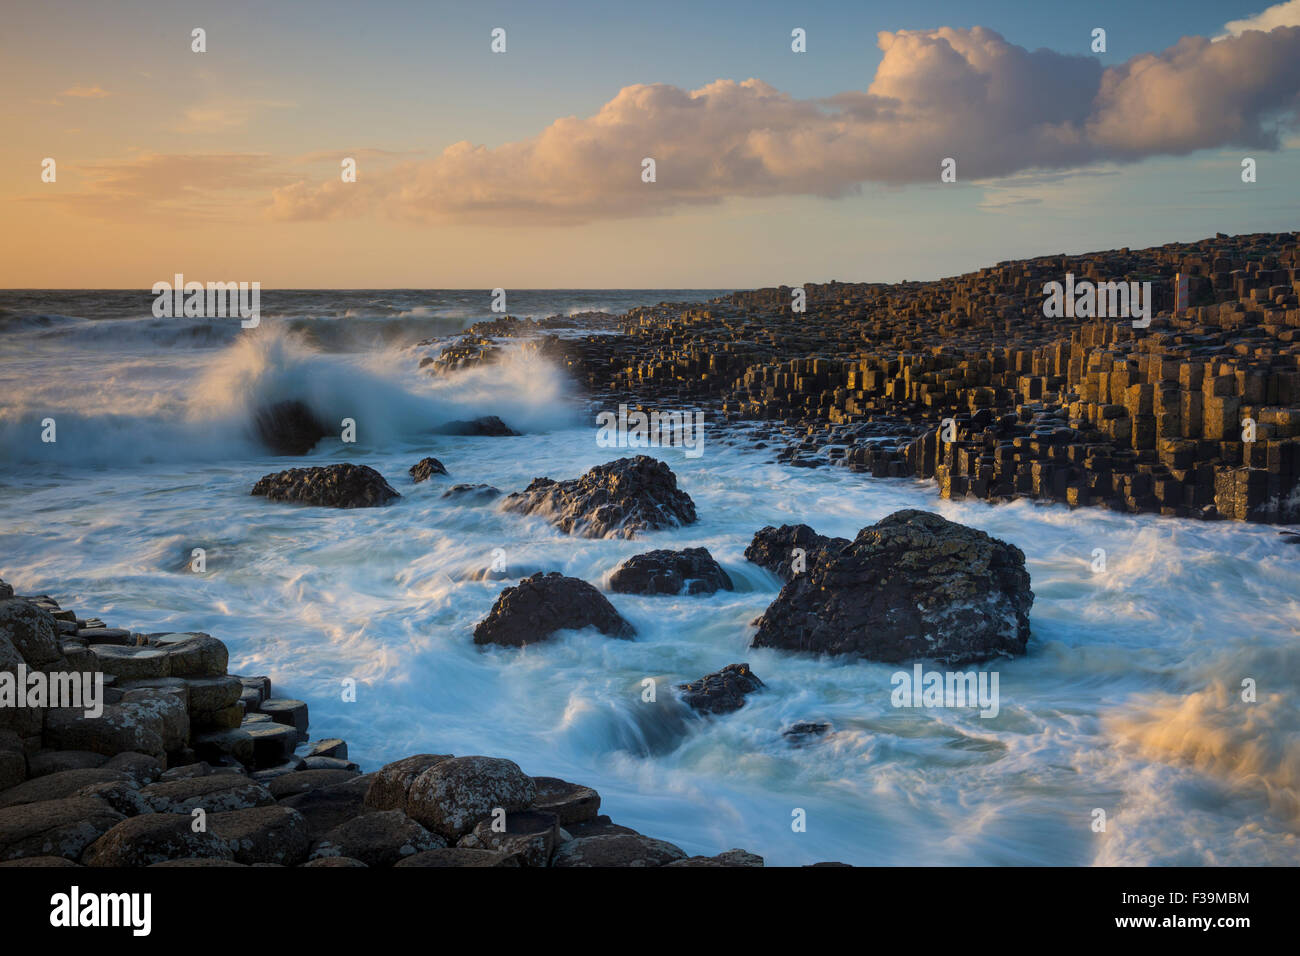 Evening sunlight on the Giant's Causeway, County Antrim, Northern Ireland - Stock Image